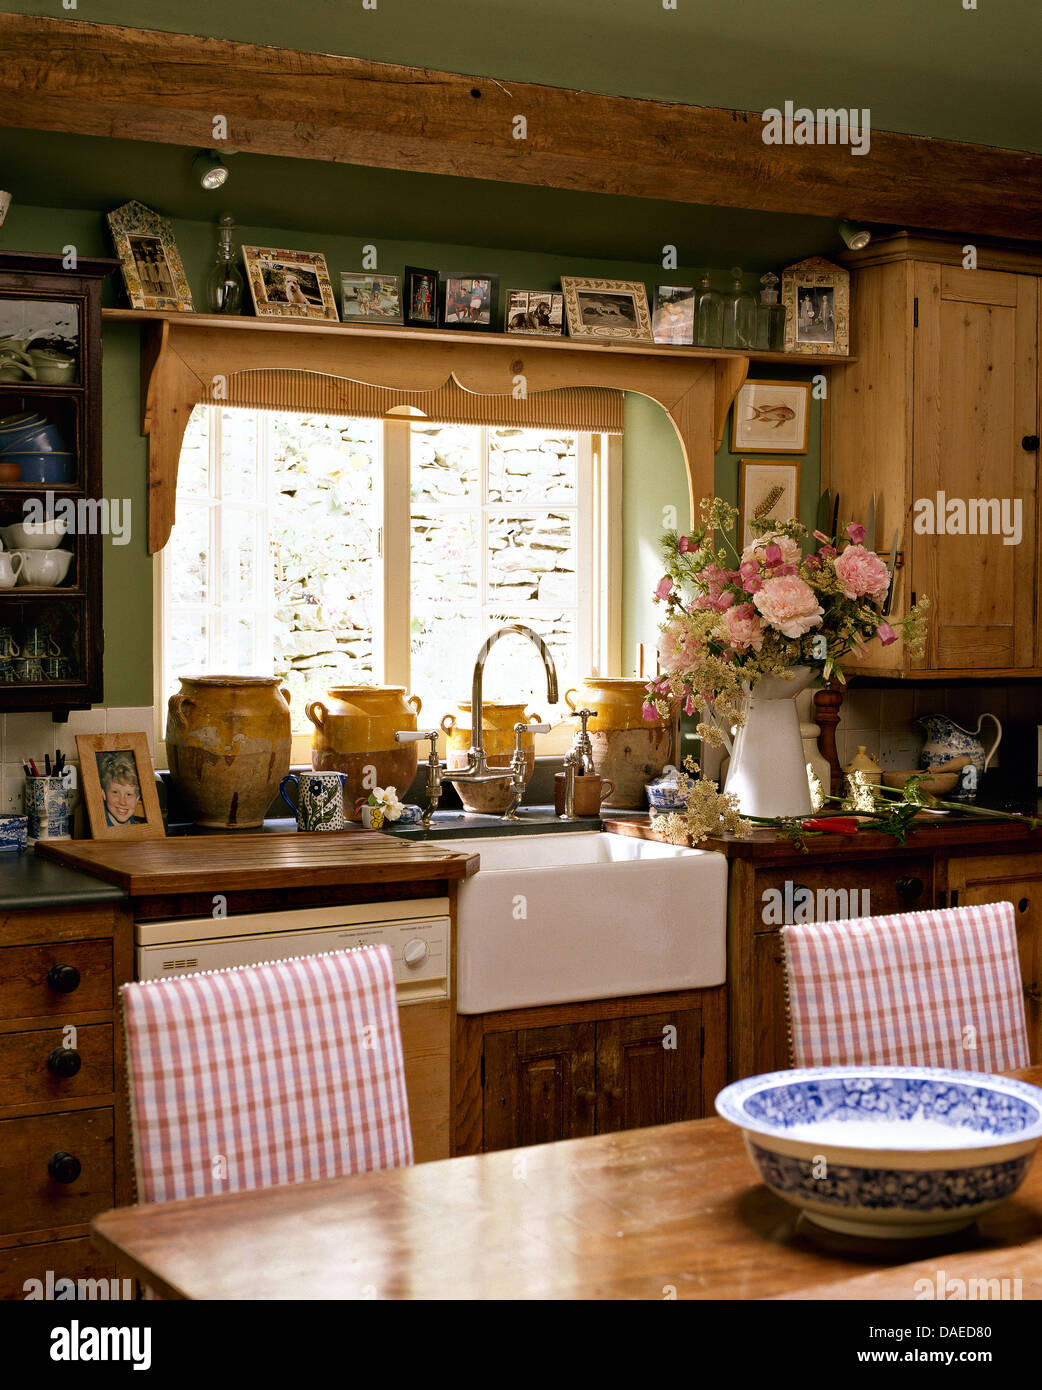 Perfect Photographs On Shelf Above Window And Belfast Sink In Cottage Kitchen With  Checked Upholstered Chairs At Simple Wood Table